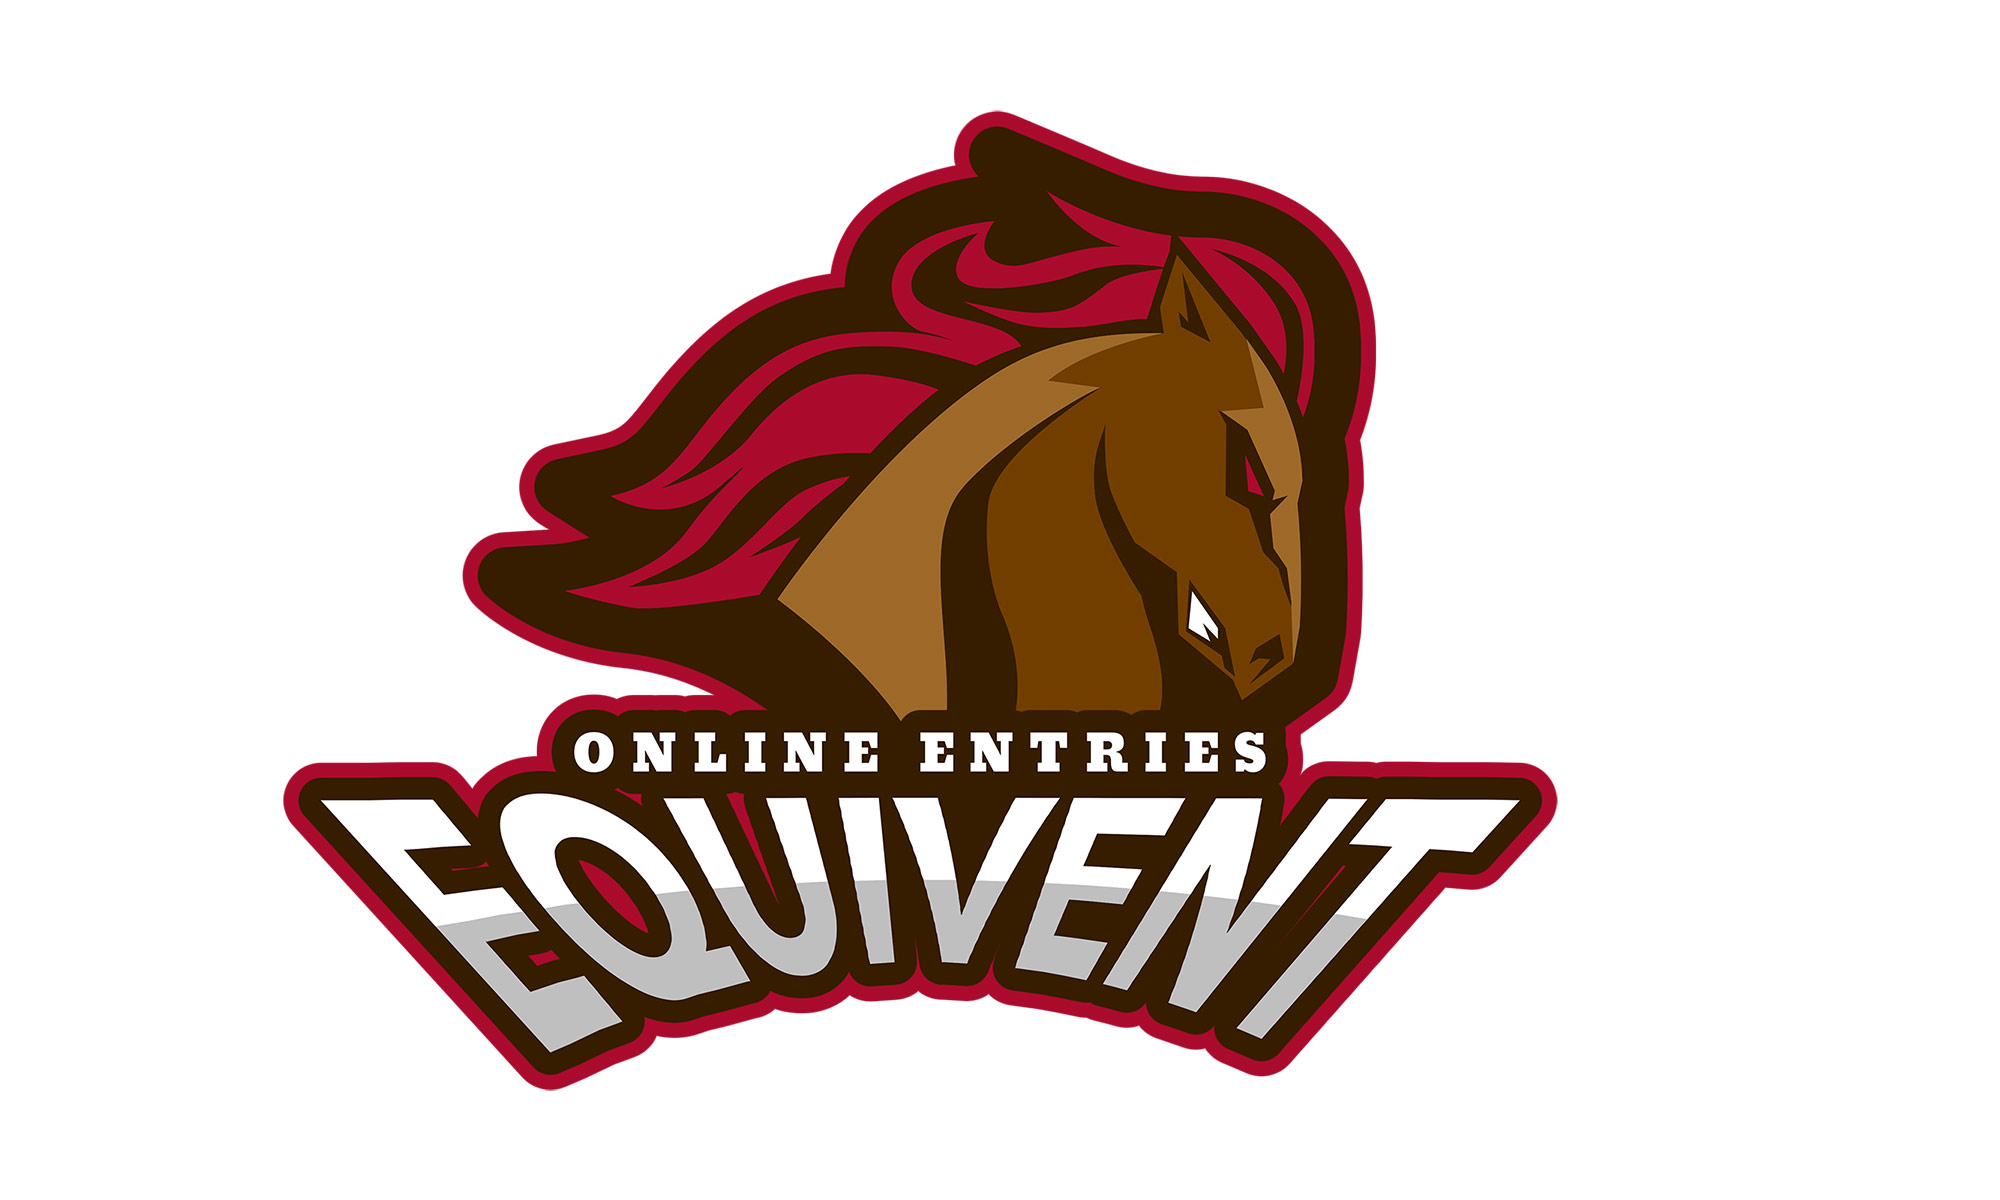 Equivent Online Entries